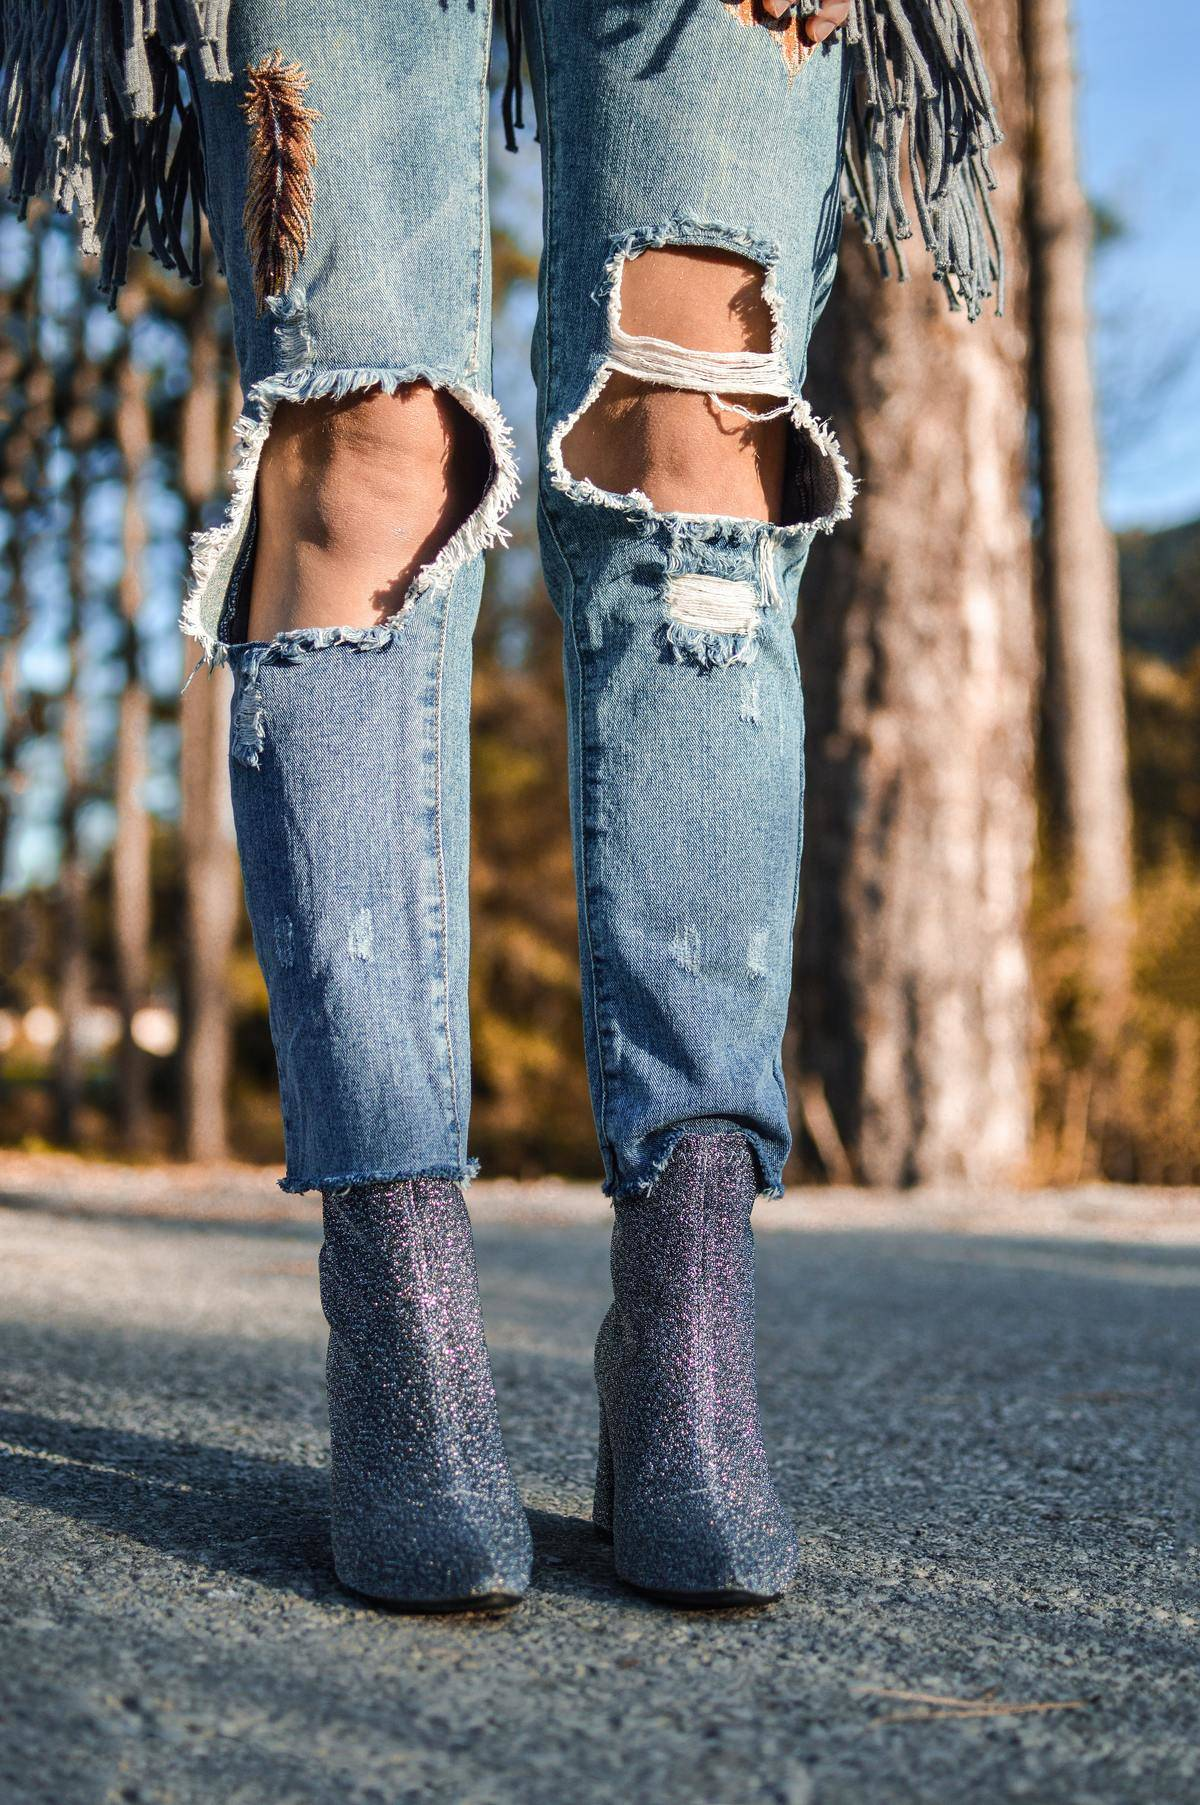 Close-up photo of a woman wearing jeans that have been ripped over the knees.